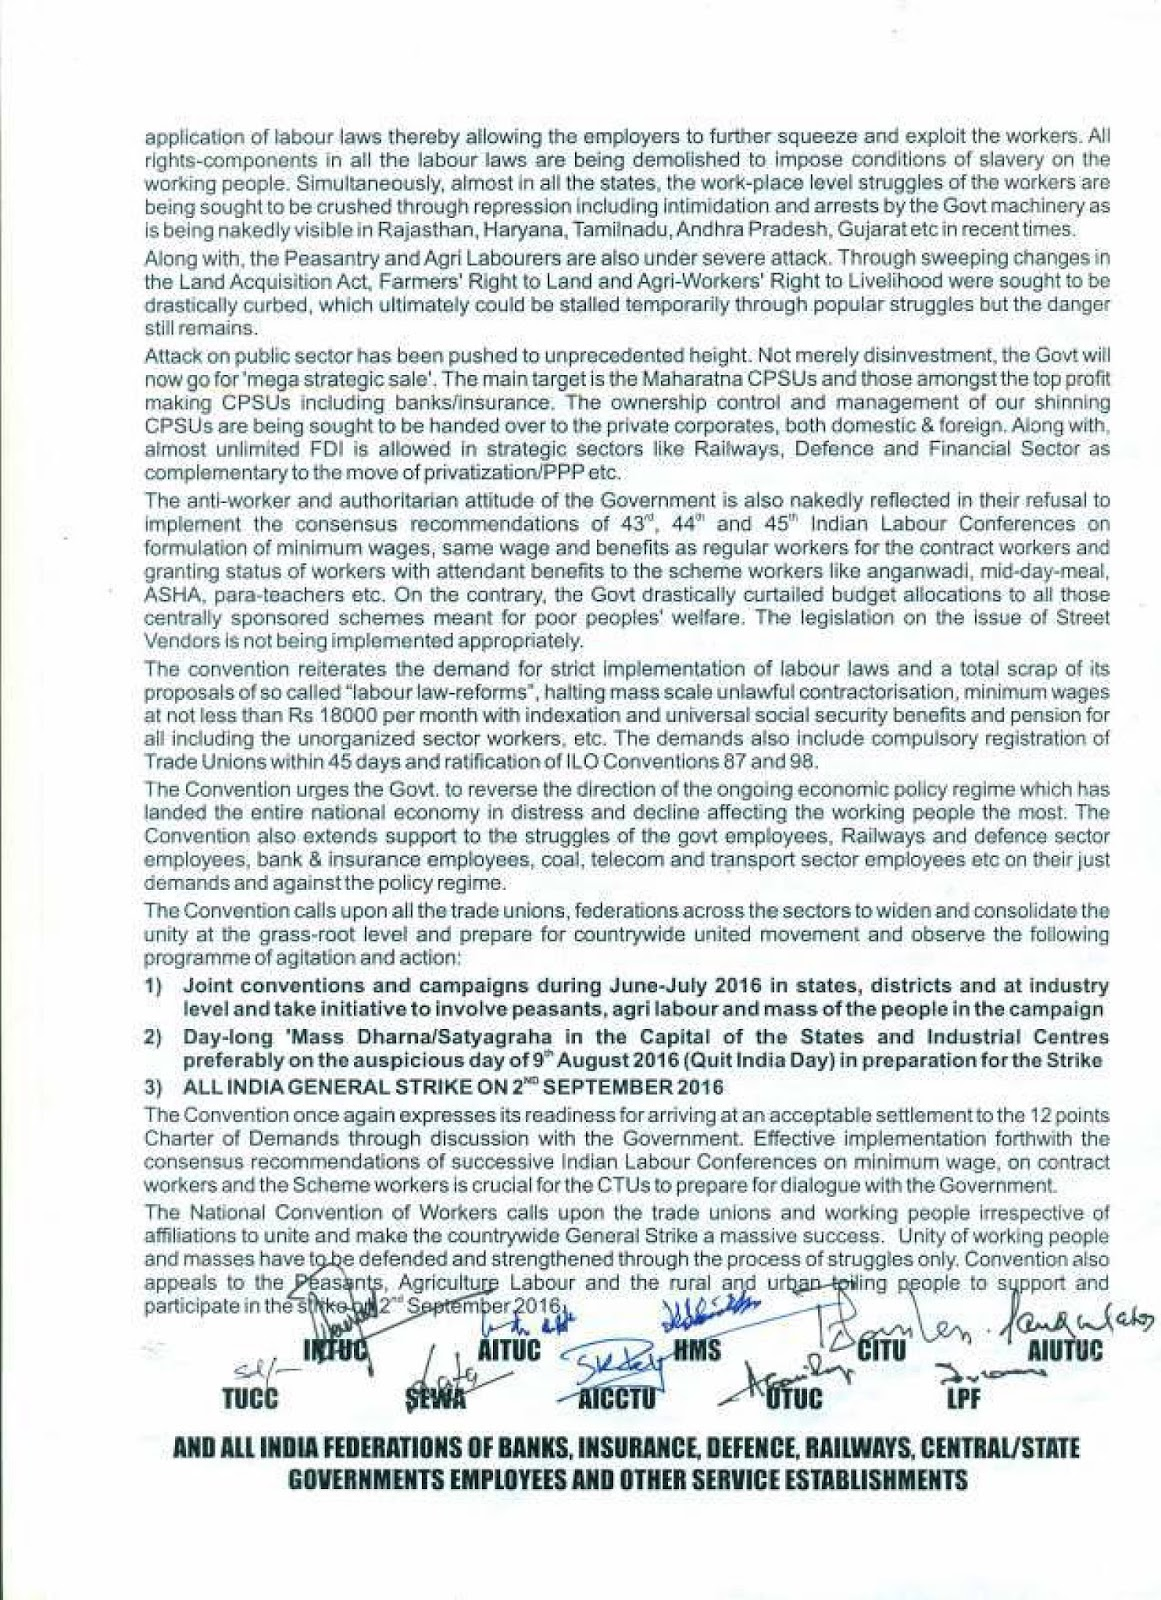 AIBOC Joins with Unions Call for All India Bank Strike on 2nd September 2016